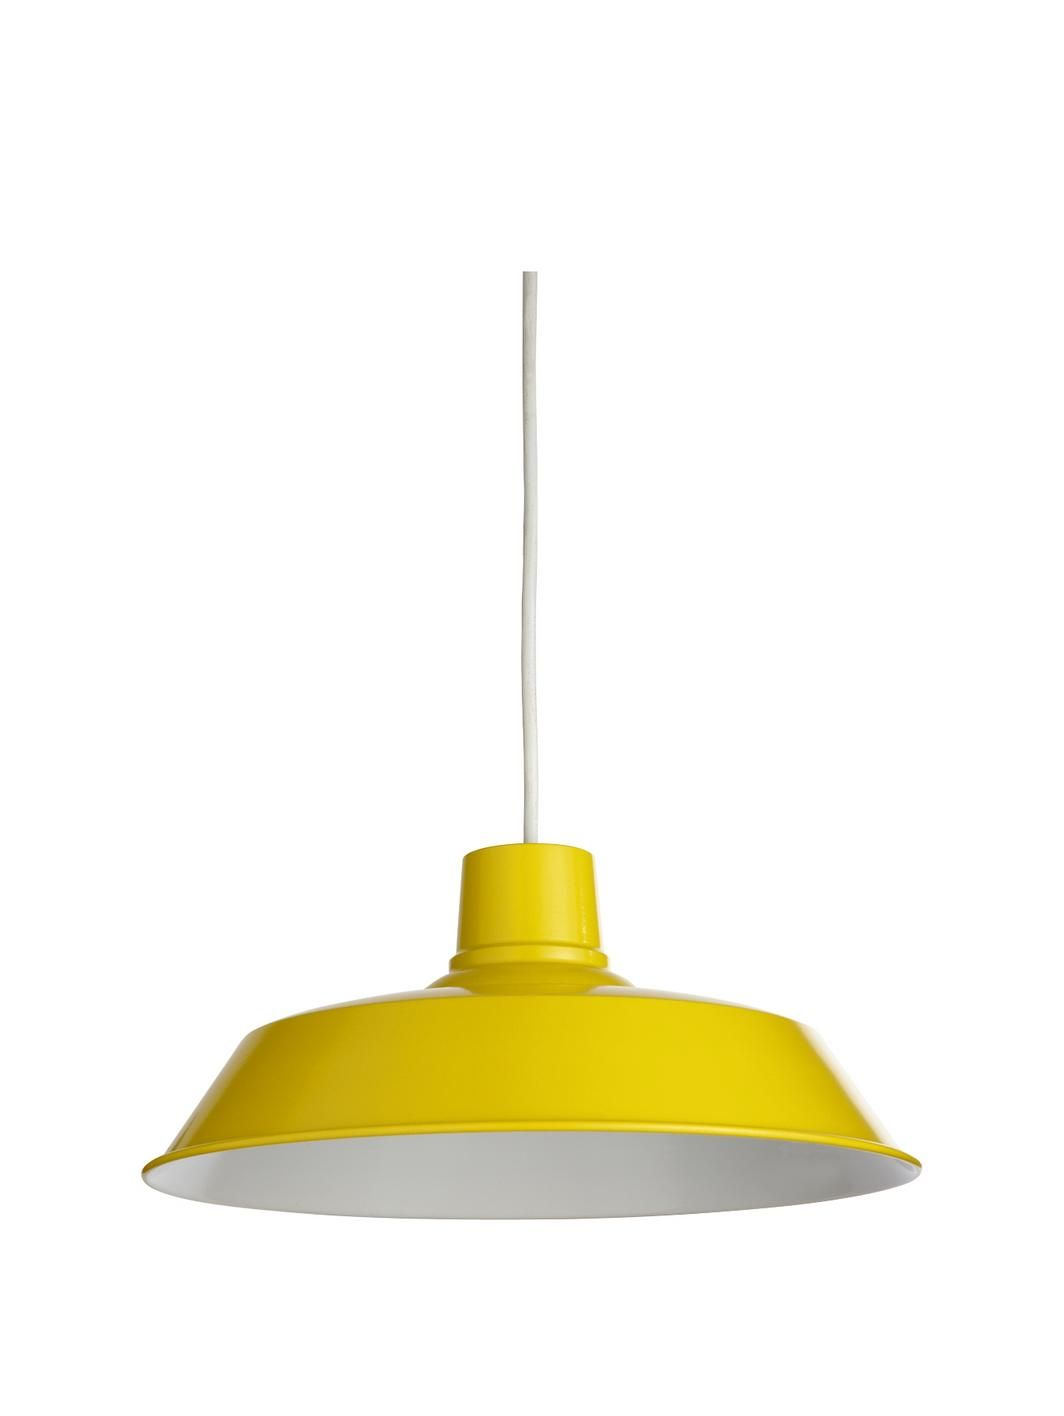 Anneka Easy Fit Pendant in decoration Pinterest Ceiling